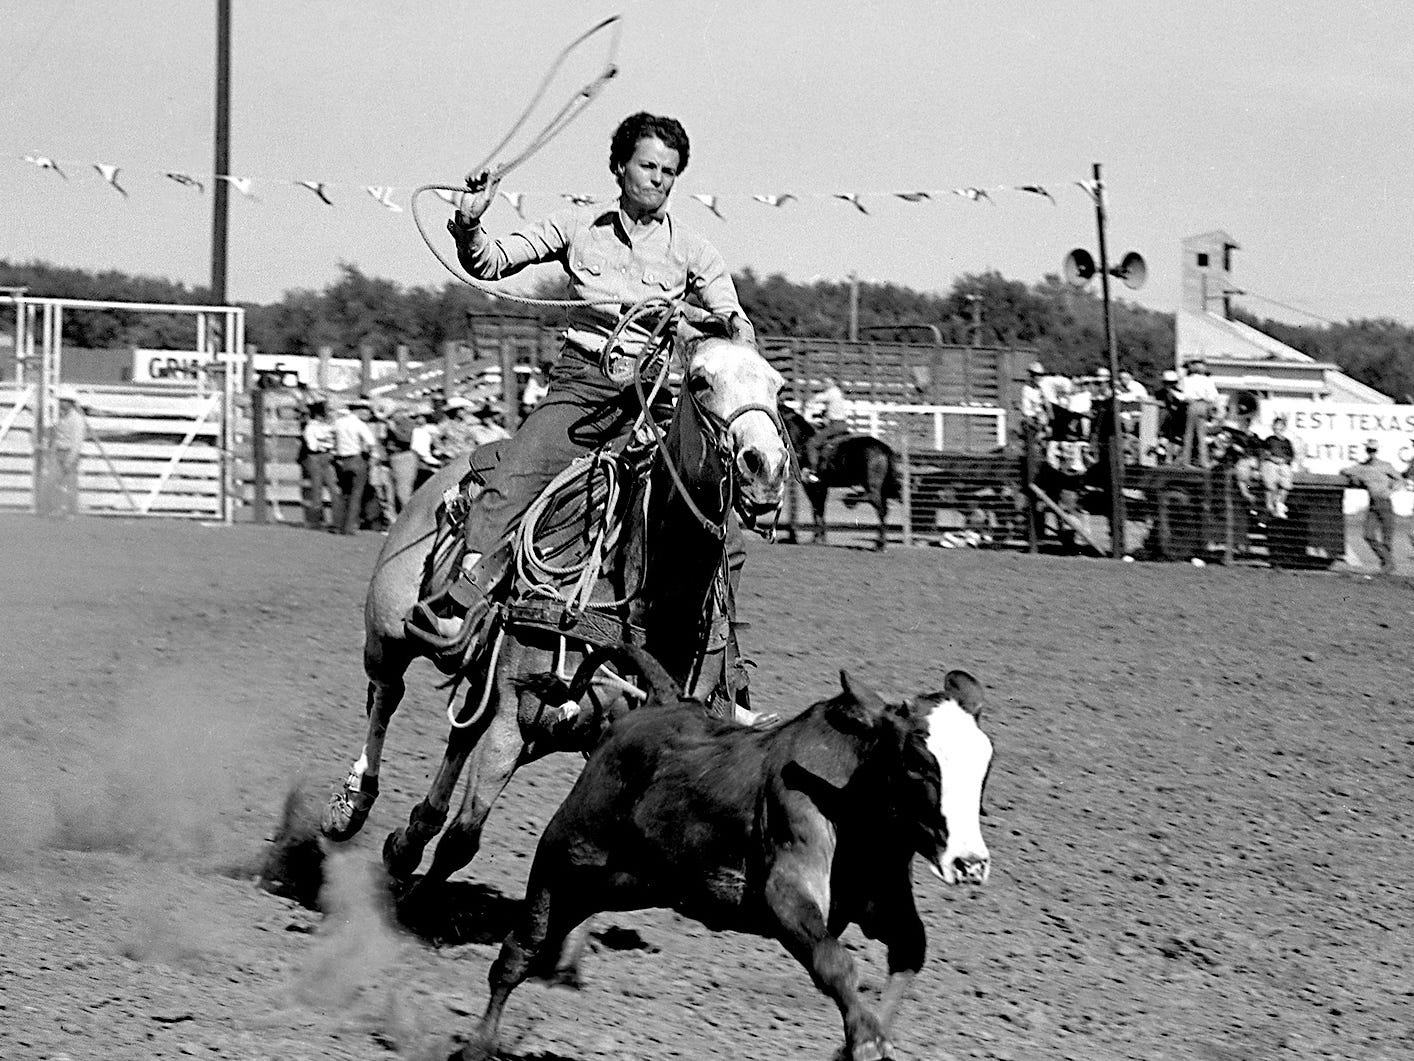 Keithley's Korner: 'Powder Puff and Spurs Chronicles' Women in Pro Rodeo